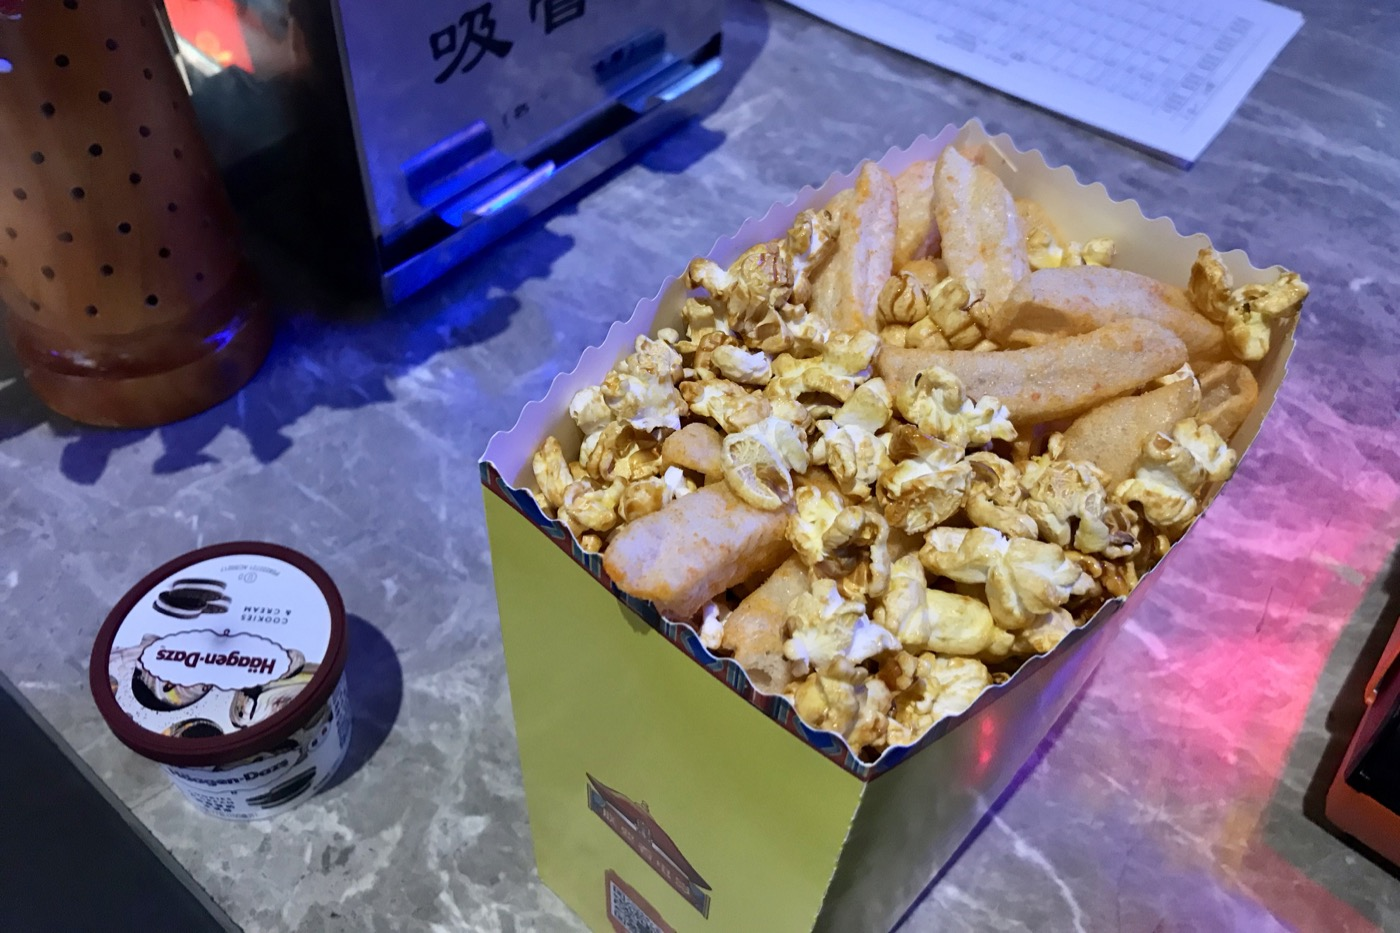 At the movies in Beijing.  Something has invaded my popcorn.